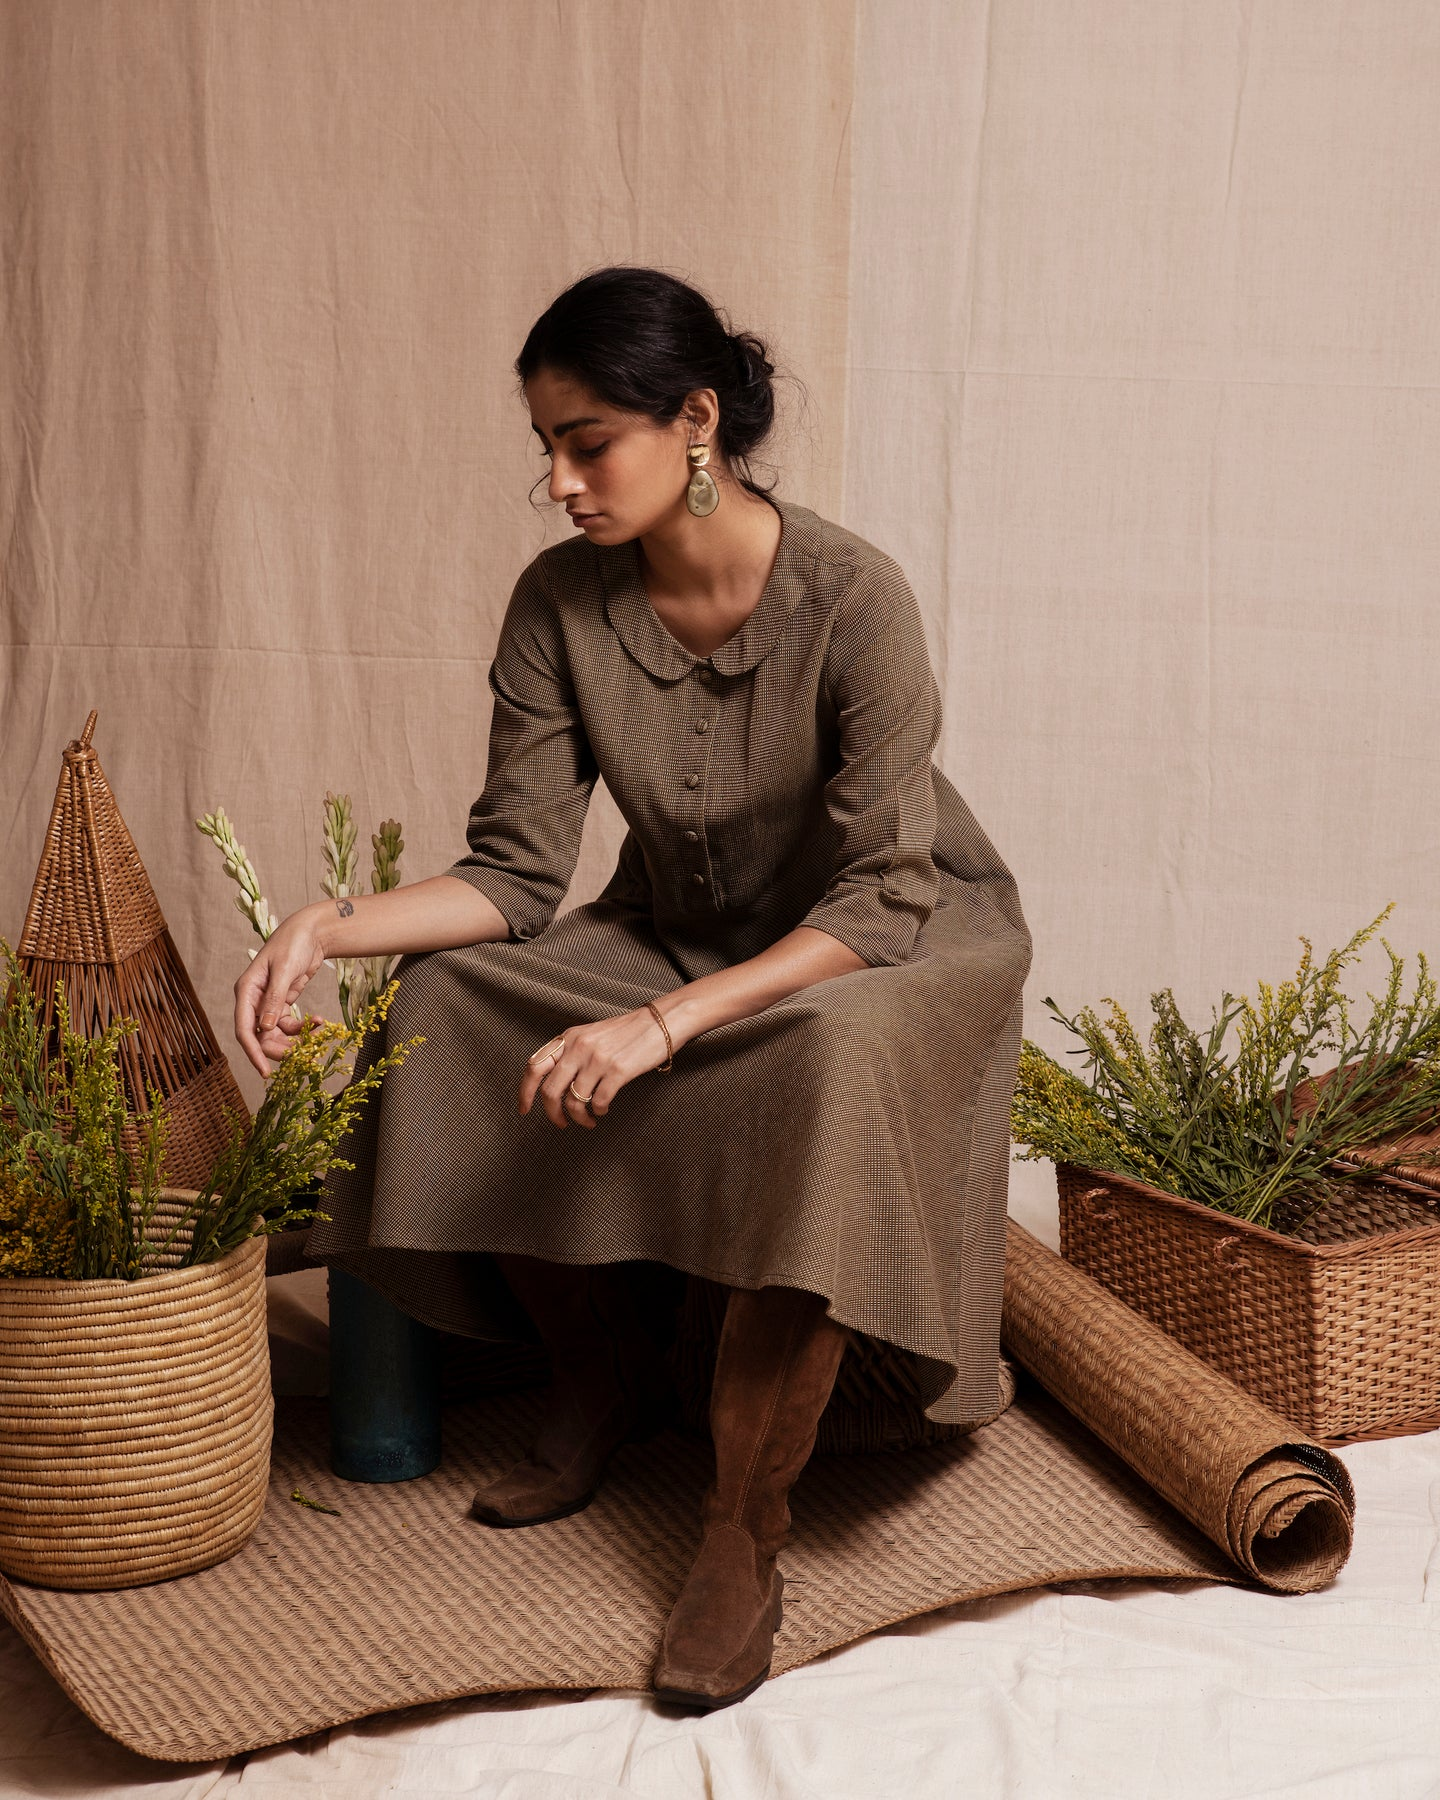 Girl sitting wearing an olive dress with brown boots